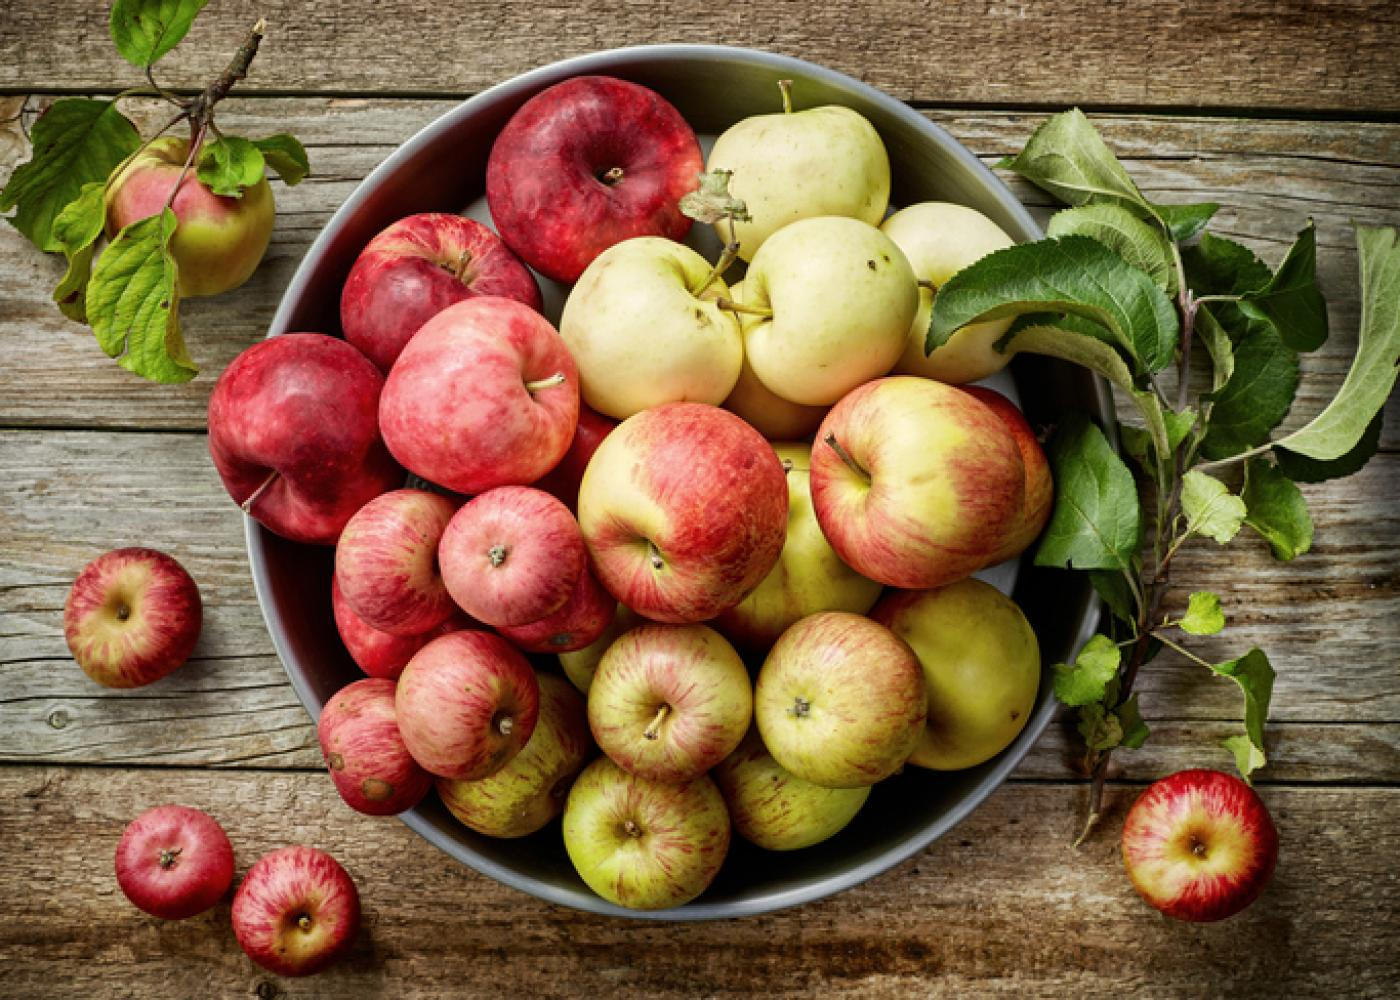 green and red apples in a bowl on a wood background